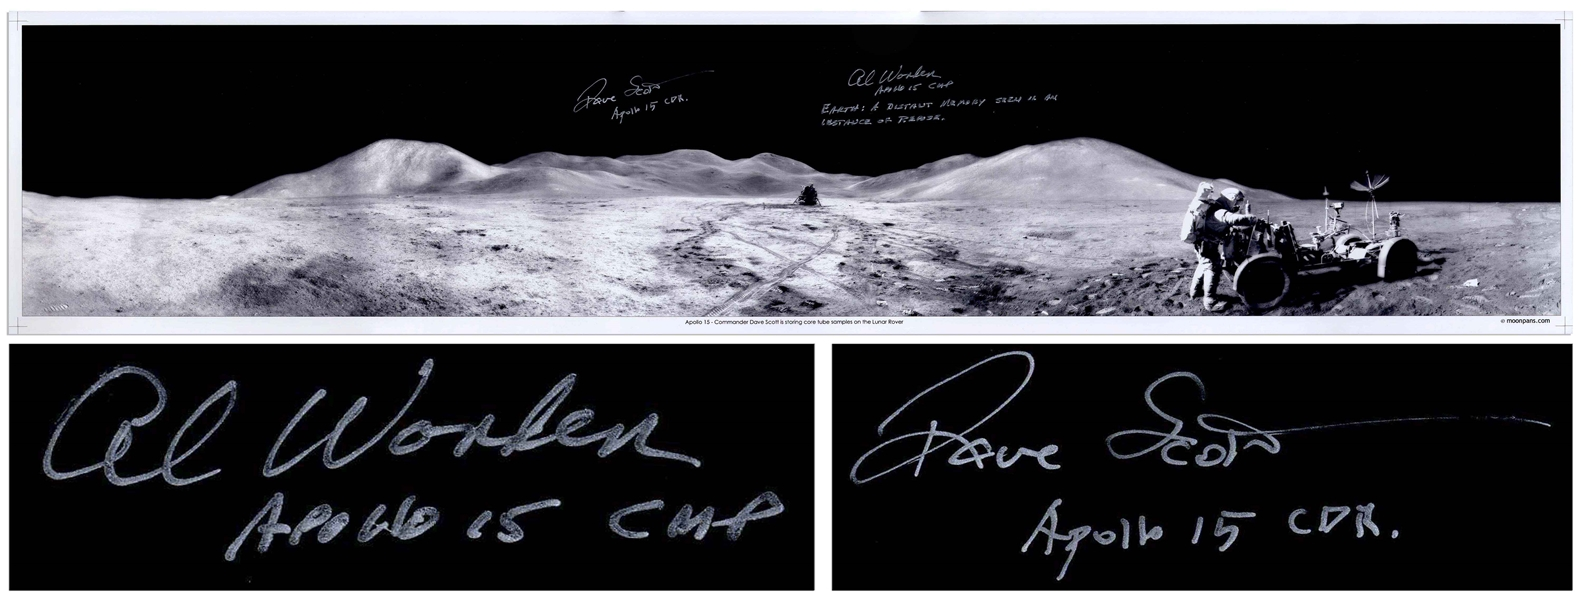 Al Worden & Dave Scott Signed Panoramic 40.5 x 8.5 Photo of the Moon's Surface -- Worden Additionally Writes His Famous Quote About Seeing Earth From the Moon